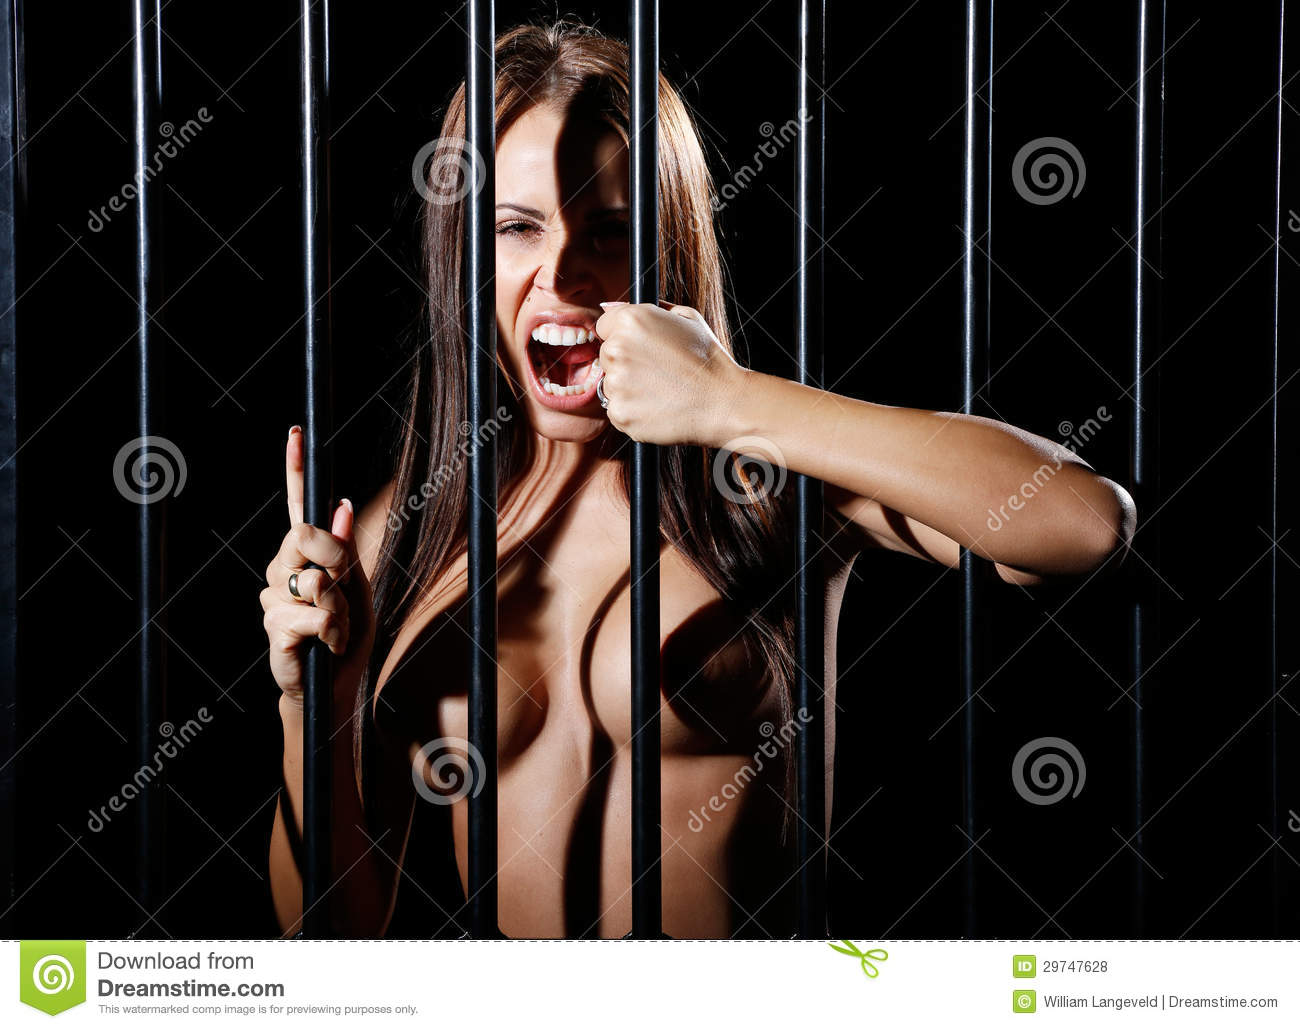 Will not Locked up behind bars consider, that